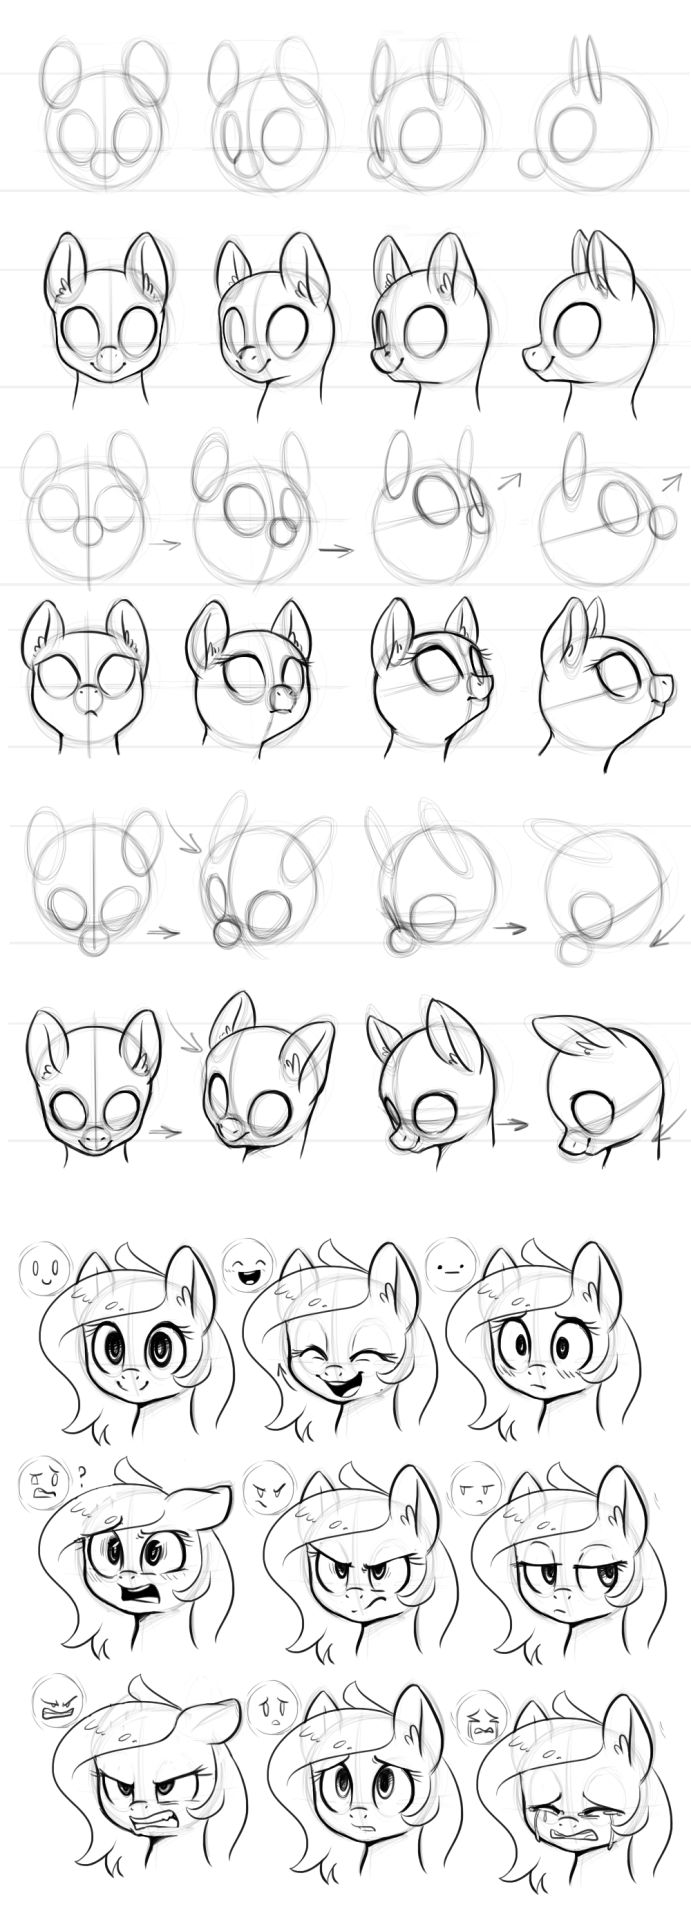 My best friend want a drawing from one of the ponys.... I think this is helpful..